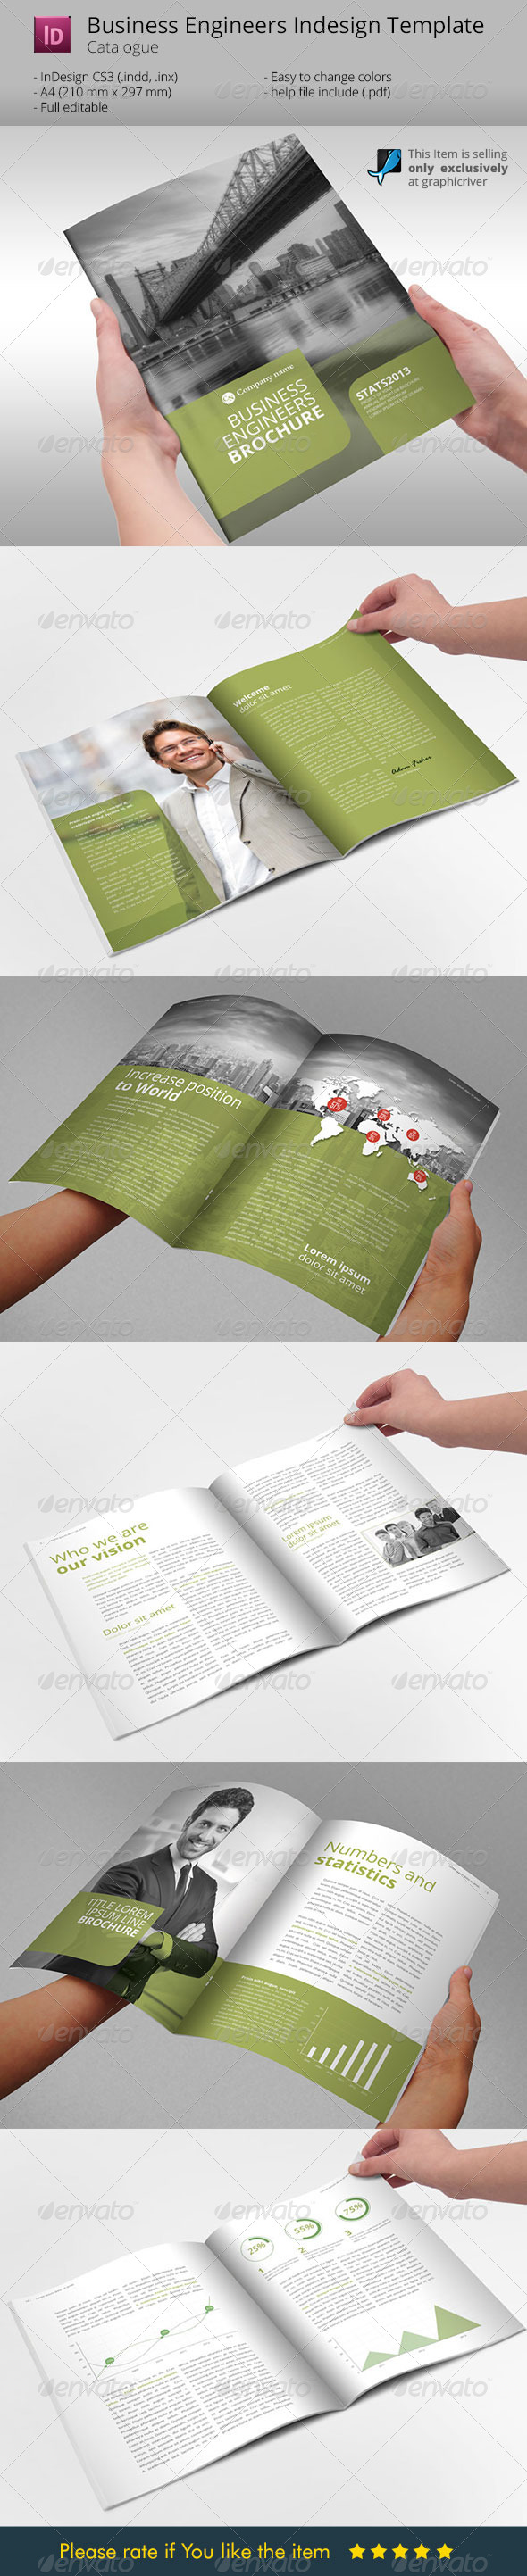 Business Engineers Green Indesign Template - Corporate Brochures